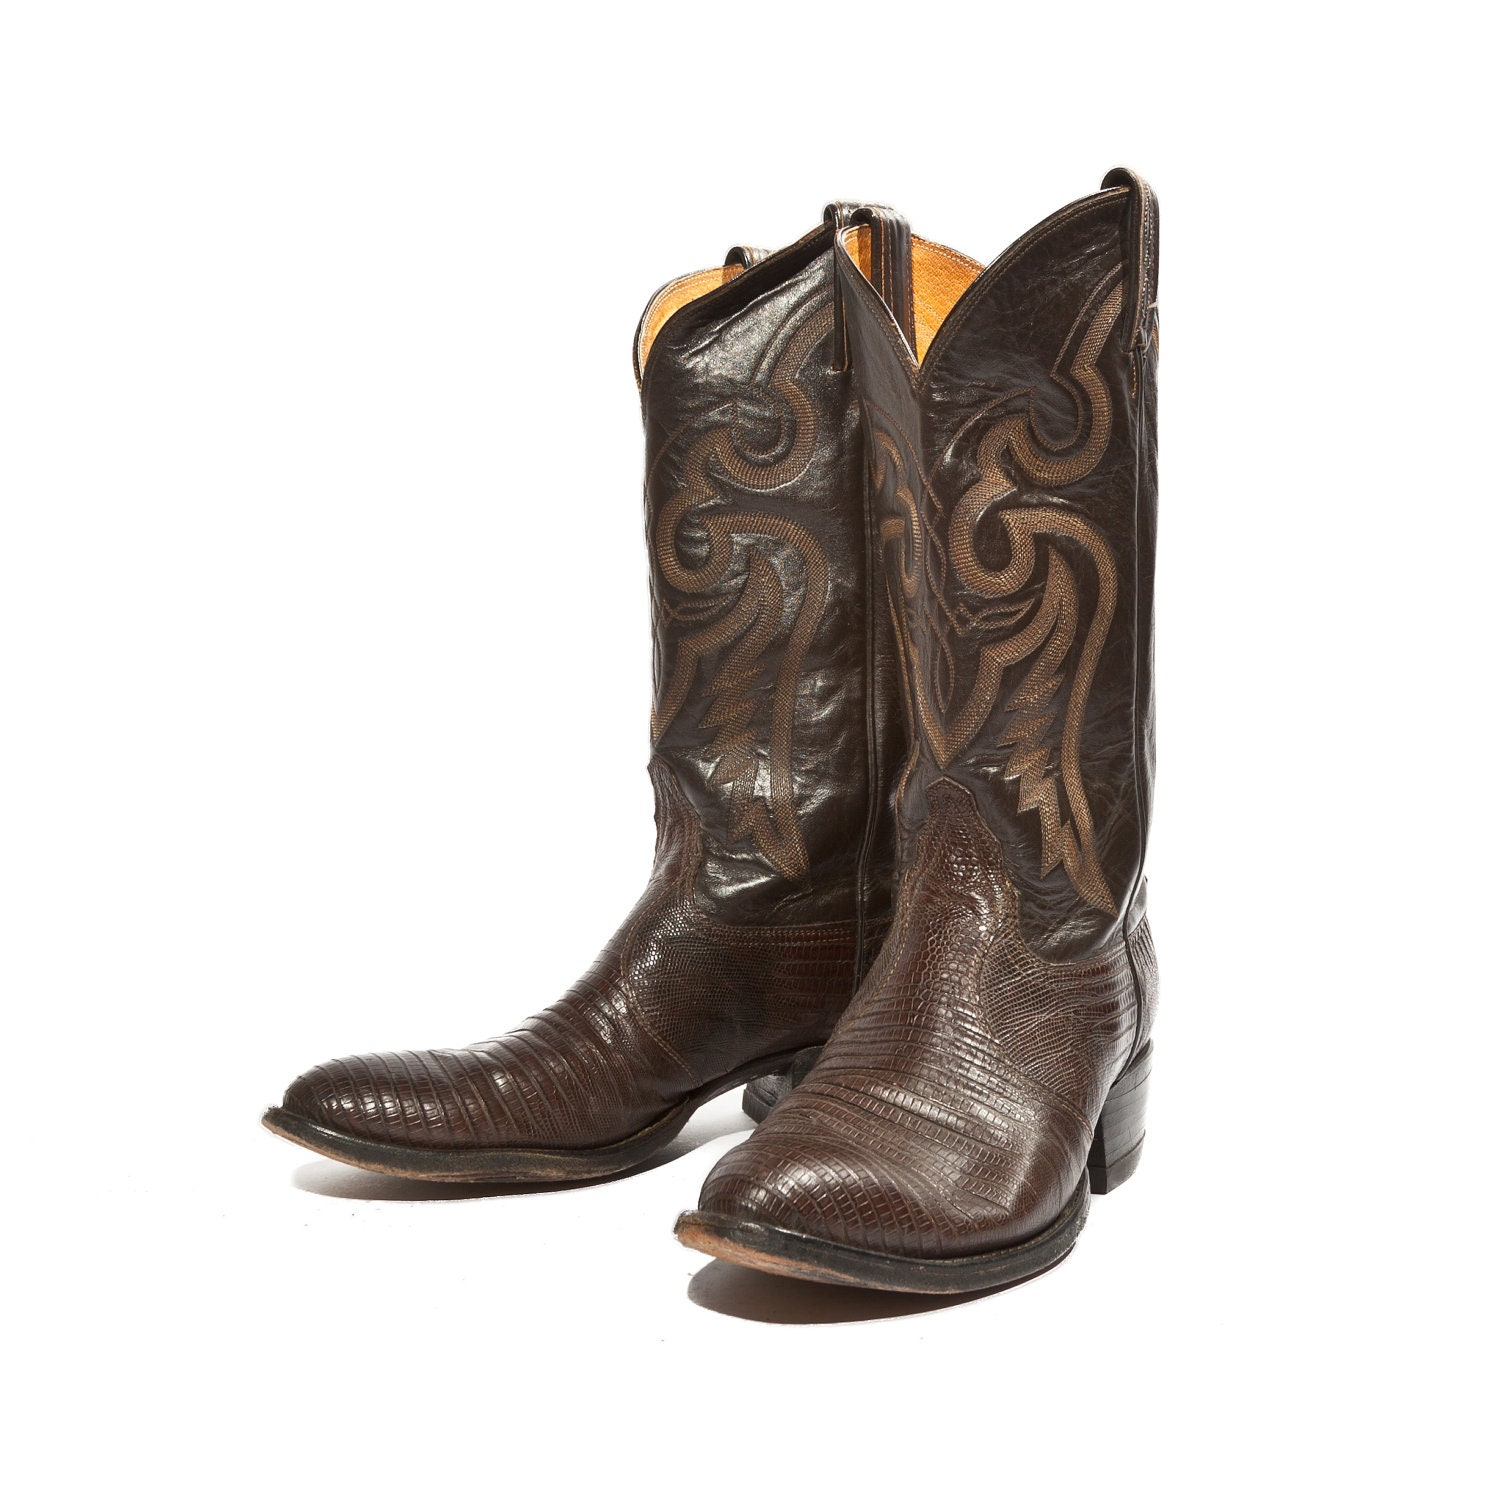 9 Men's Chocolate Brown Cowboy Boots by Tony Lama in